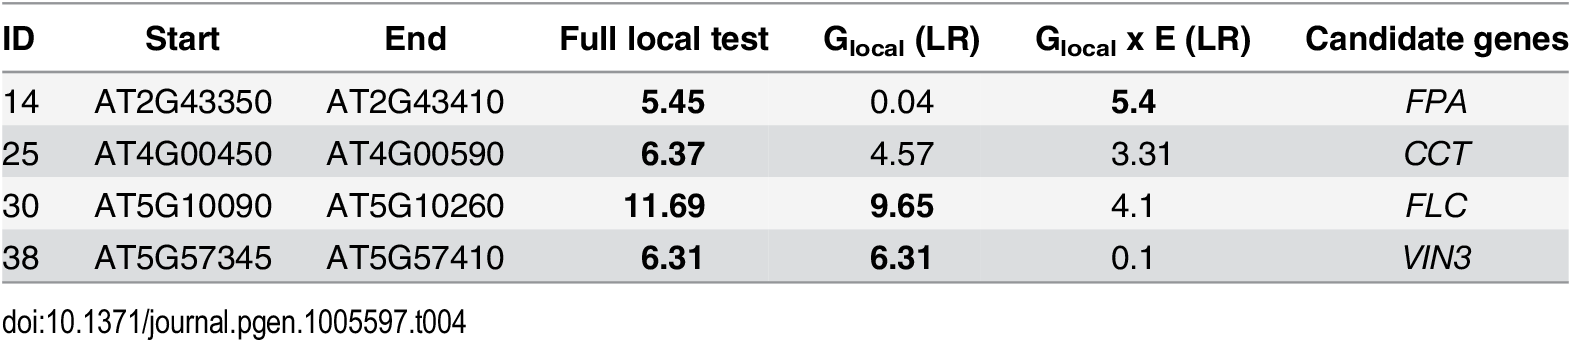 <i>A priori</i> candidates identified at 20% FDR by local association test.